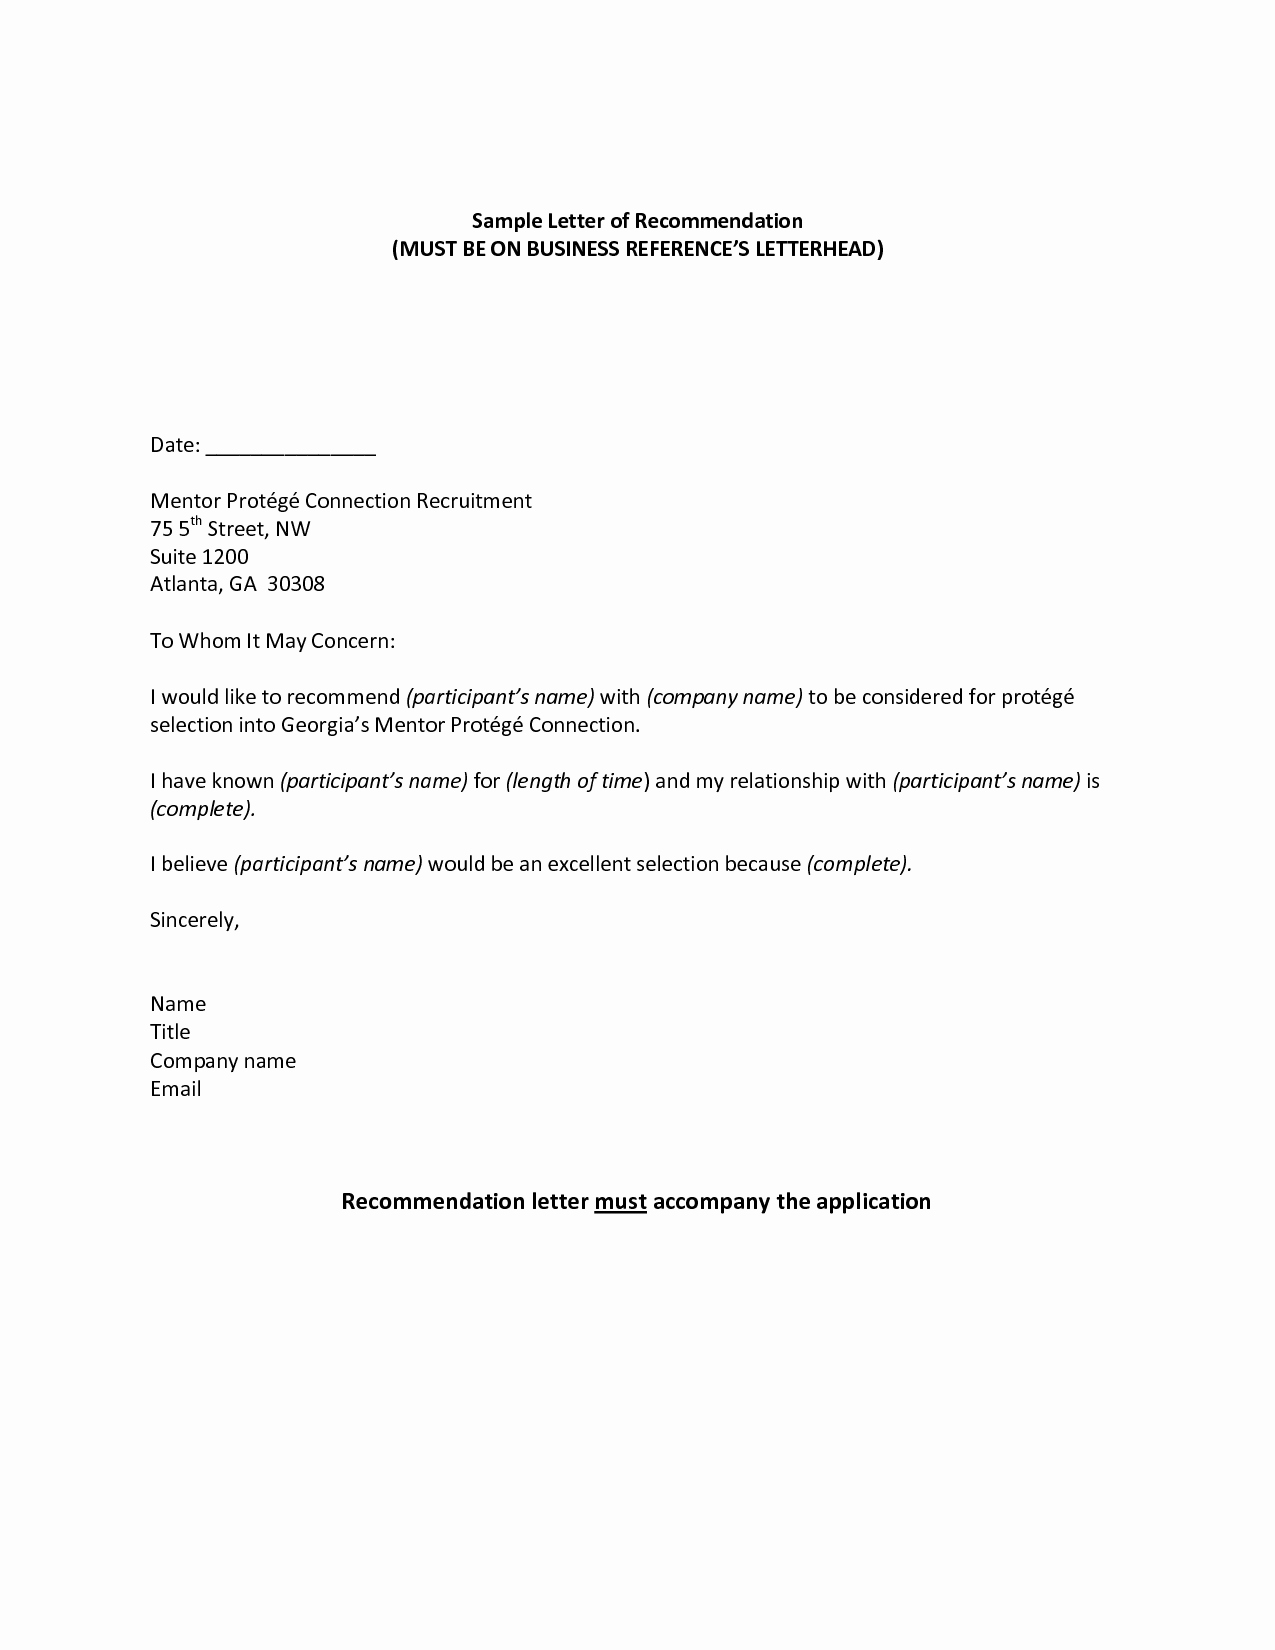 Formal Letter Of Recommendation Template Inspirational Professional Reference Sample Re Mendation Letter Jos